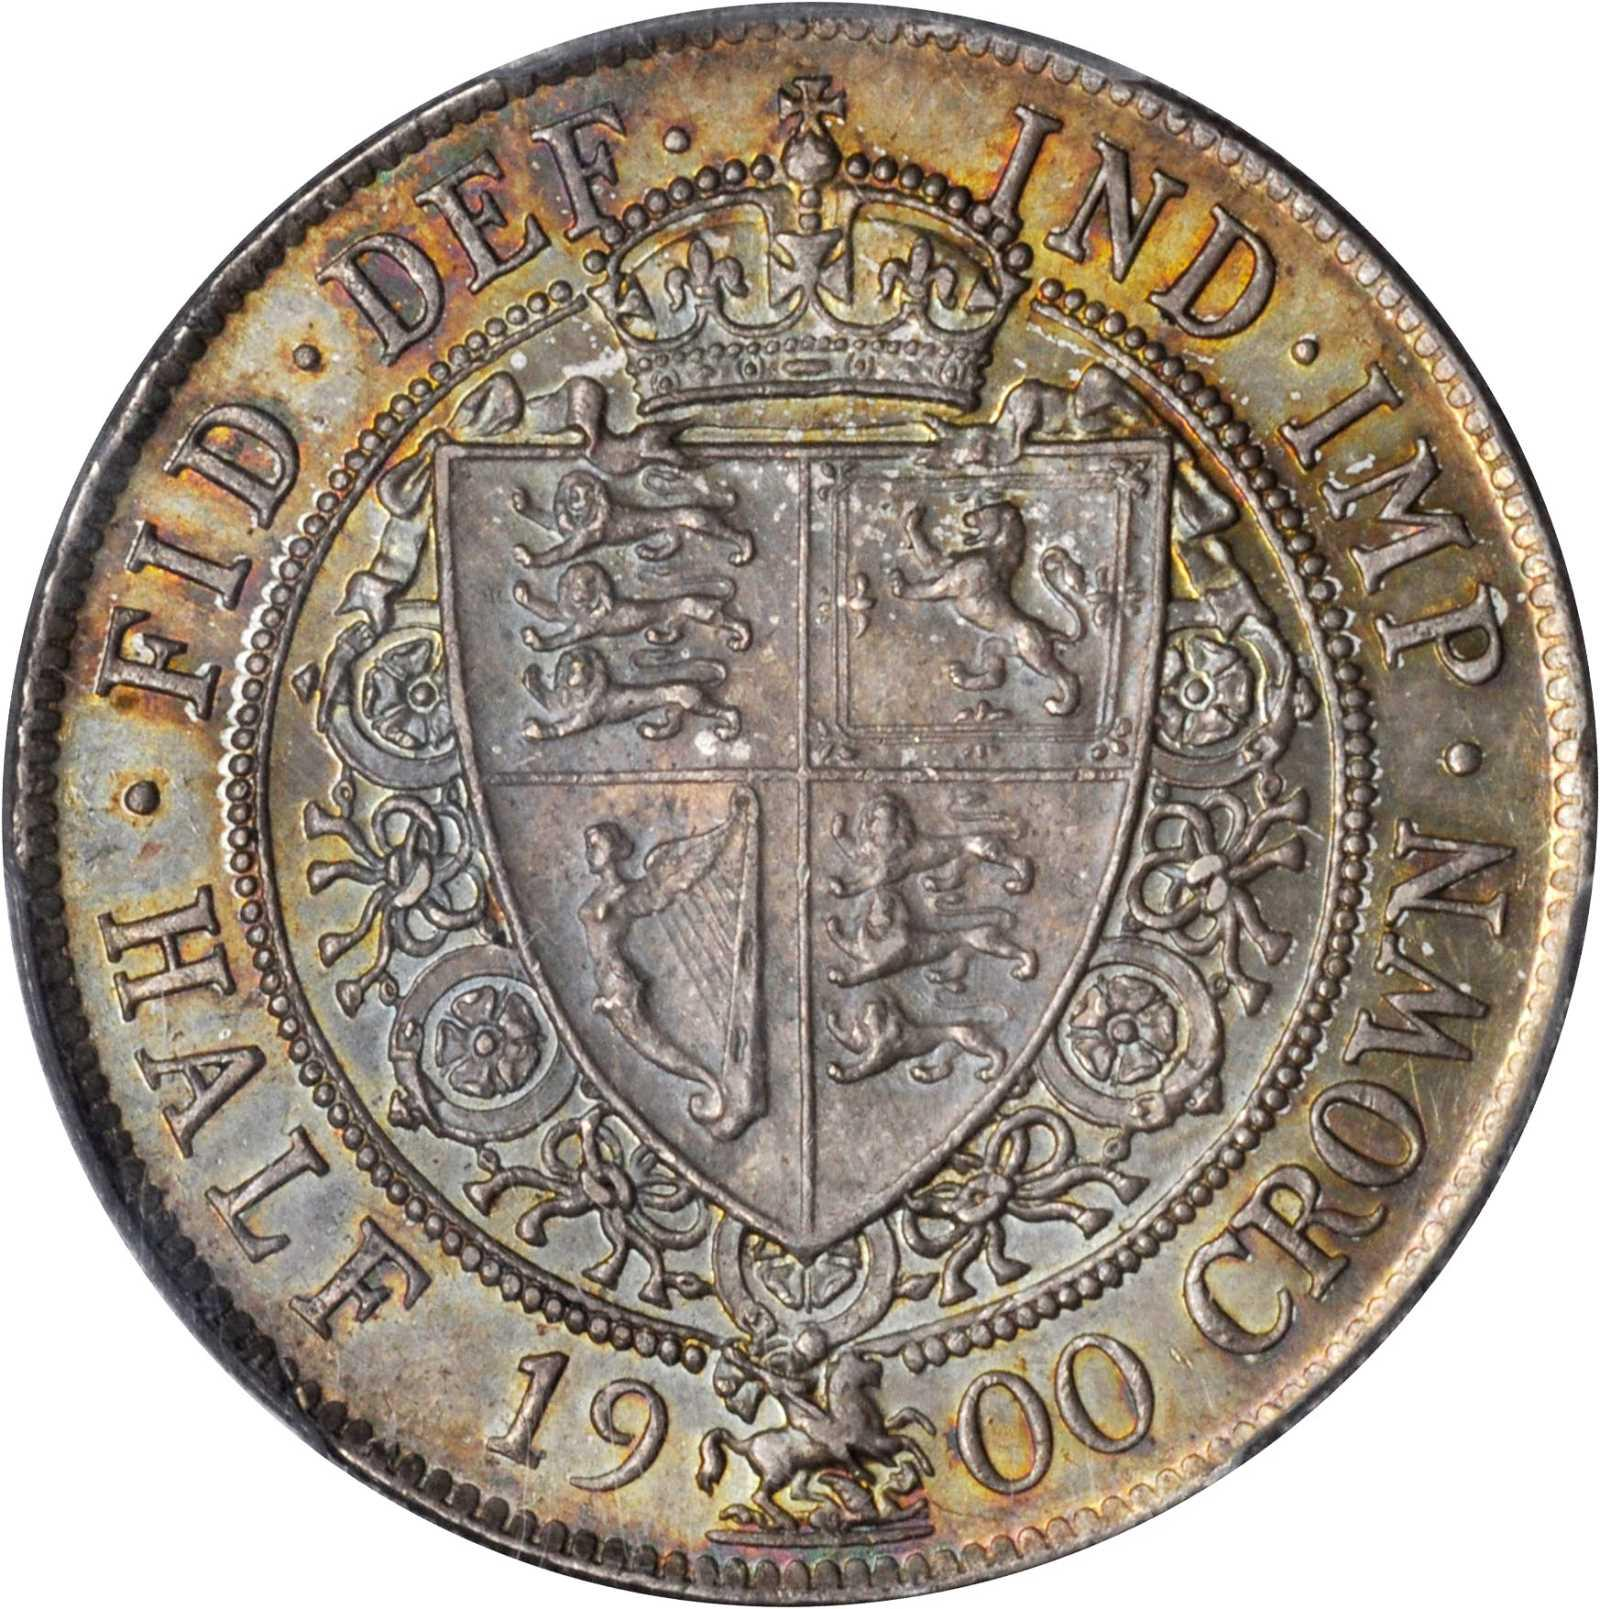 Halfcrown 1900: Photo Great Britain 1900 half crown